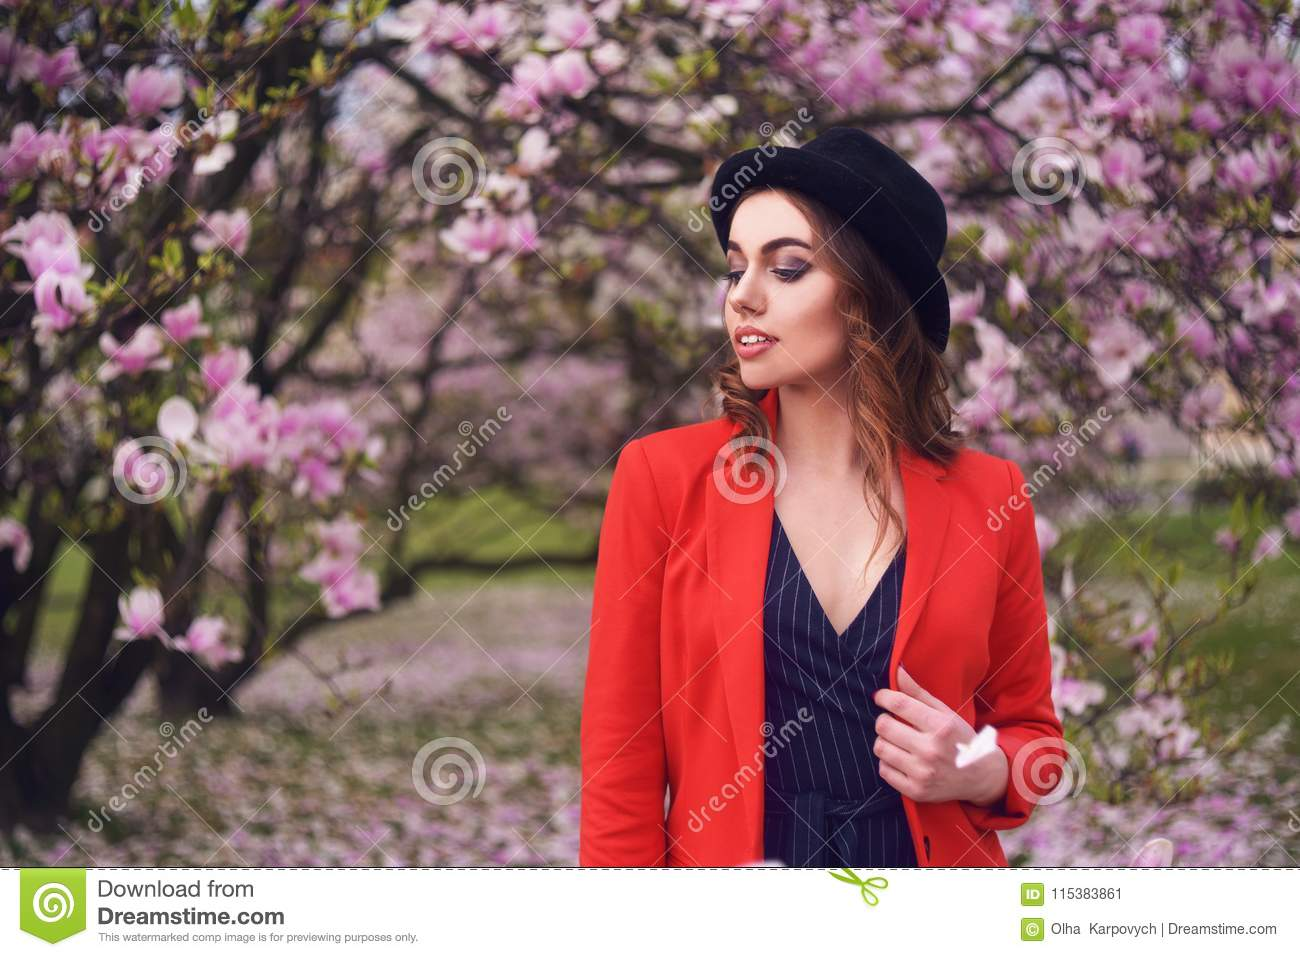 Spring fashion girl outdoors portrait in blooming trees. Beauty Romantic woman in flowers. Sensual Lady enjoying Nature.